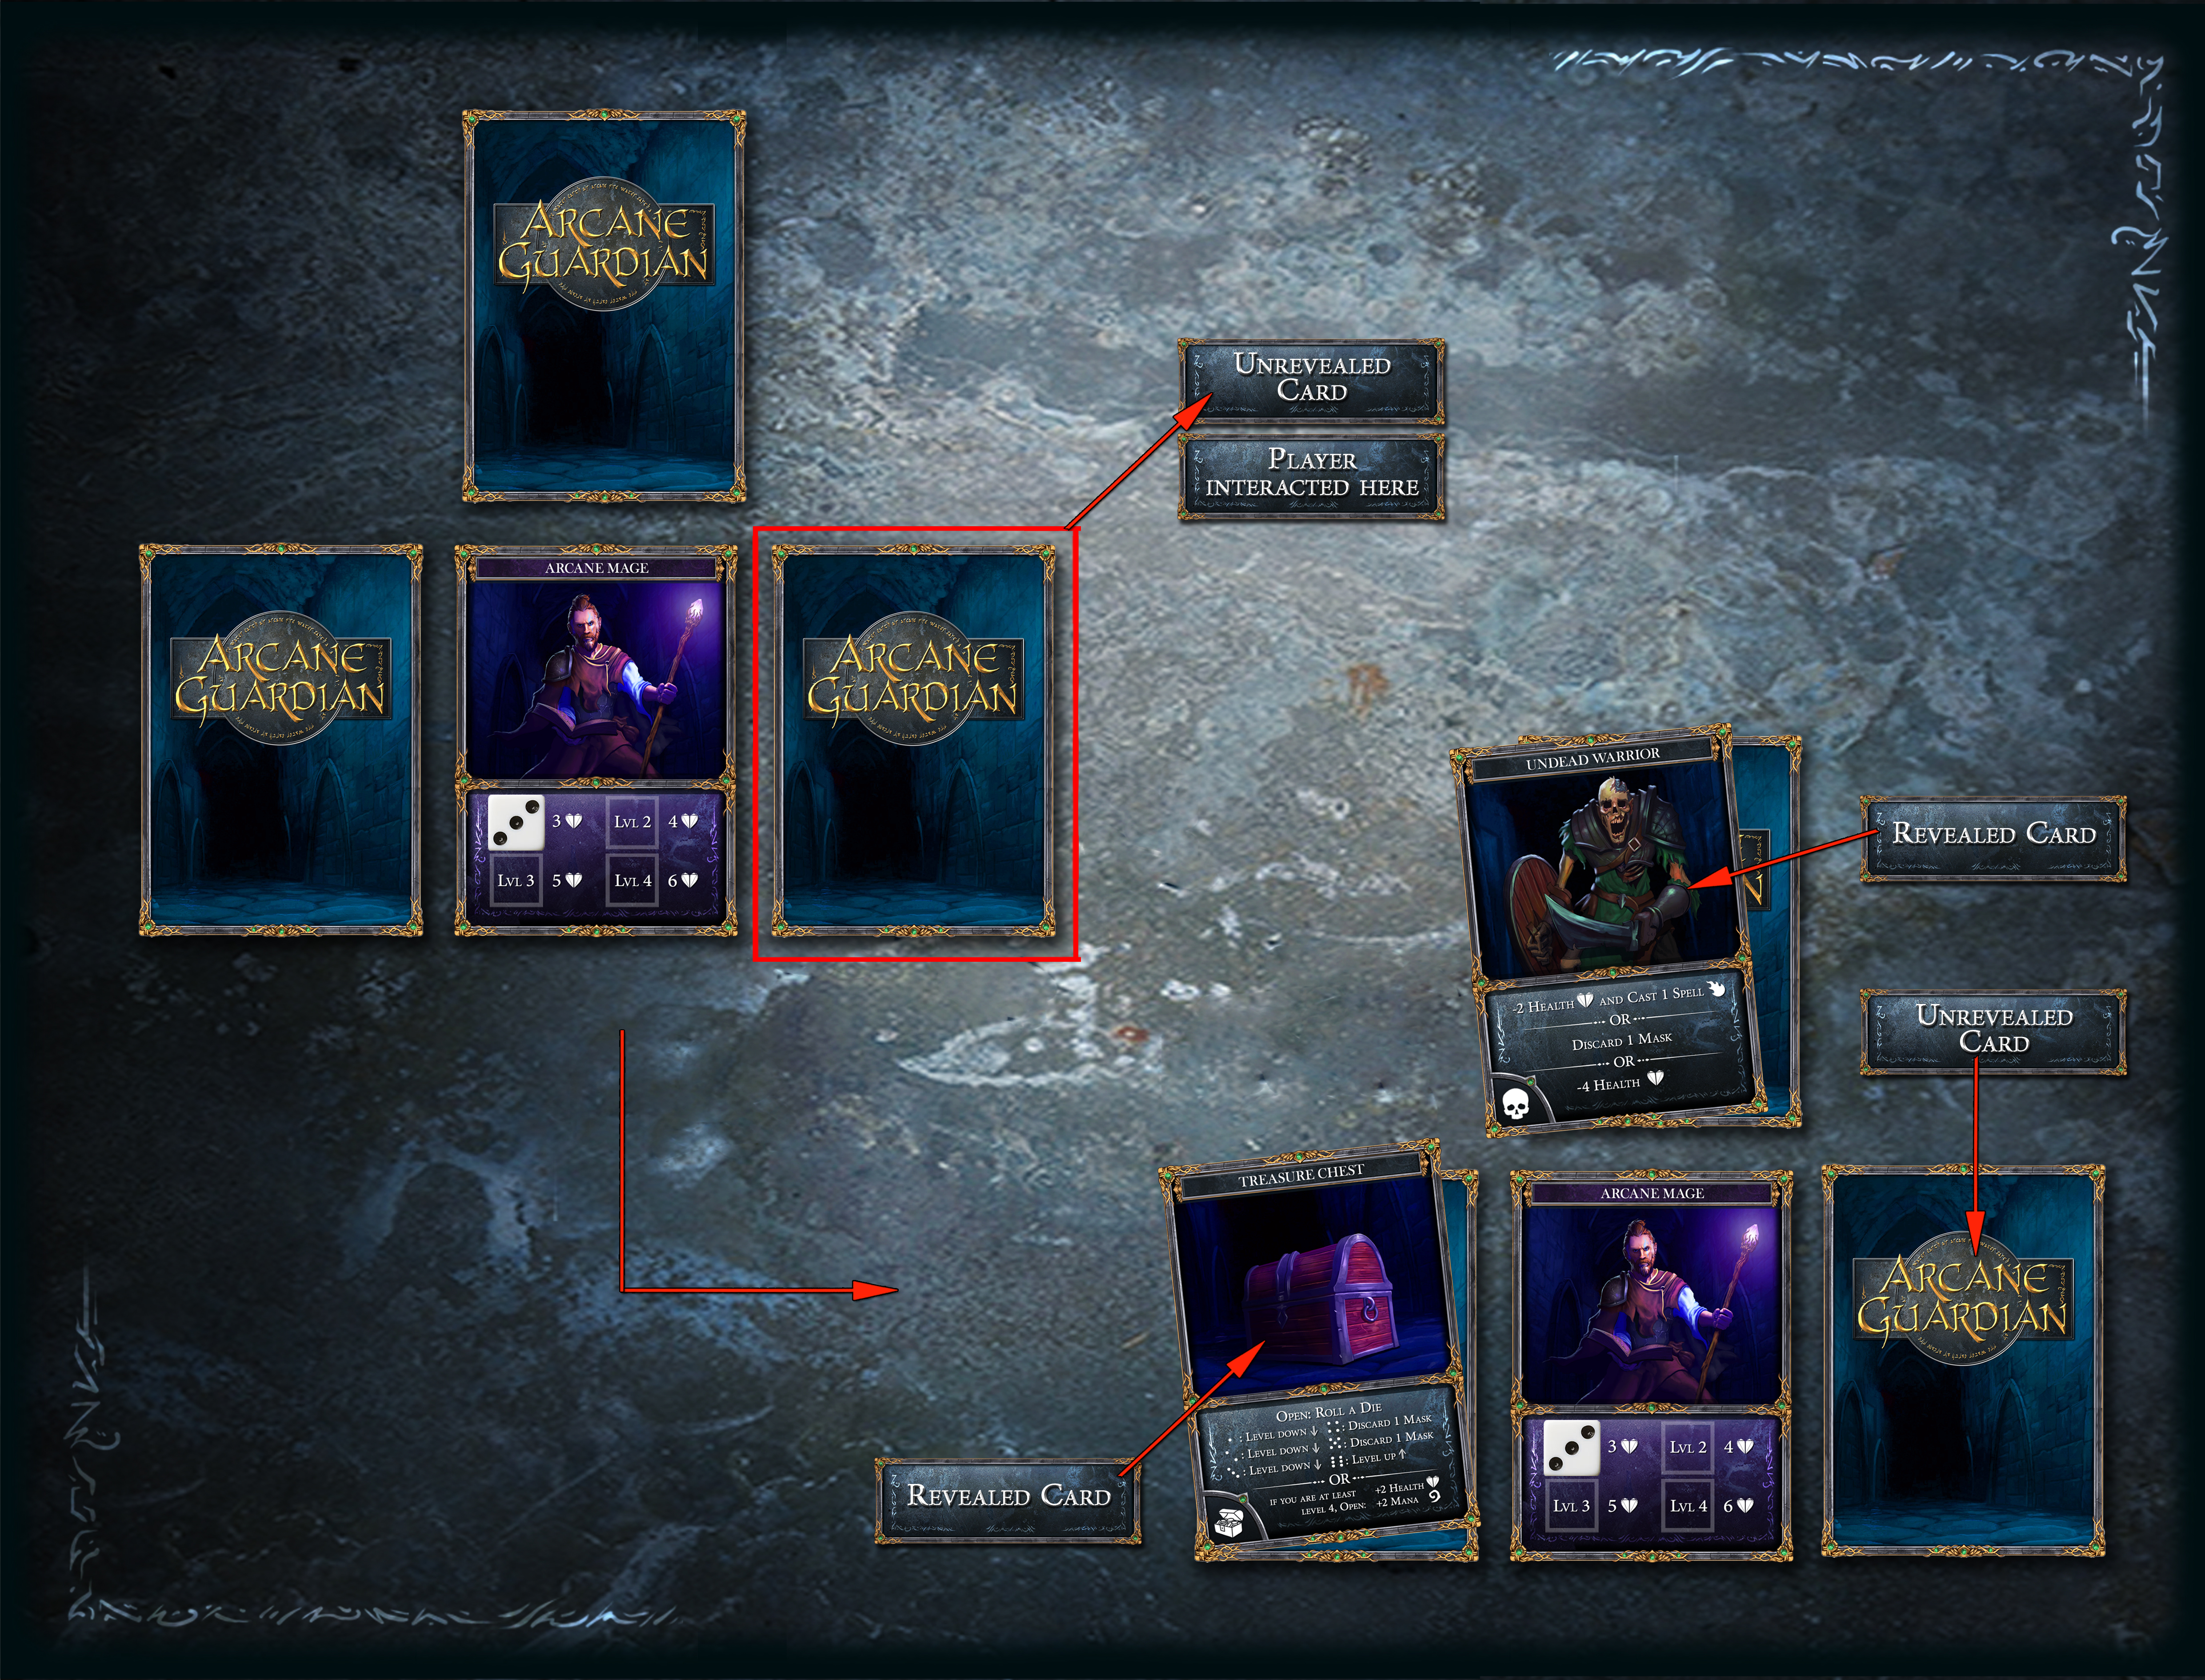 Reveal cards after interaction